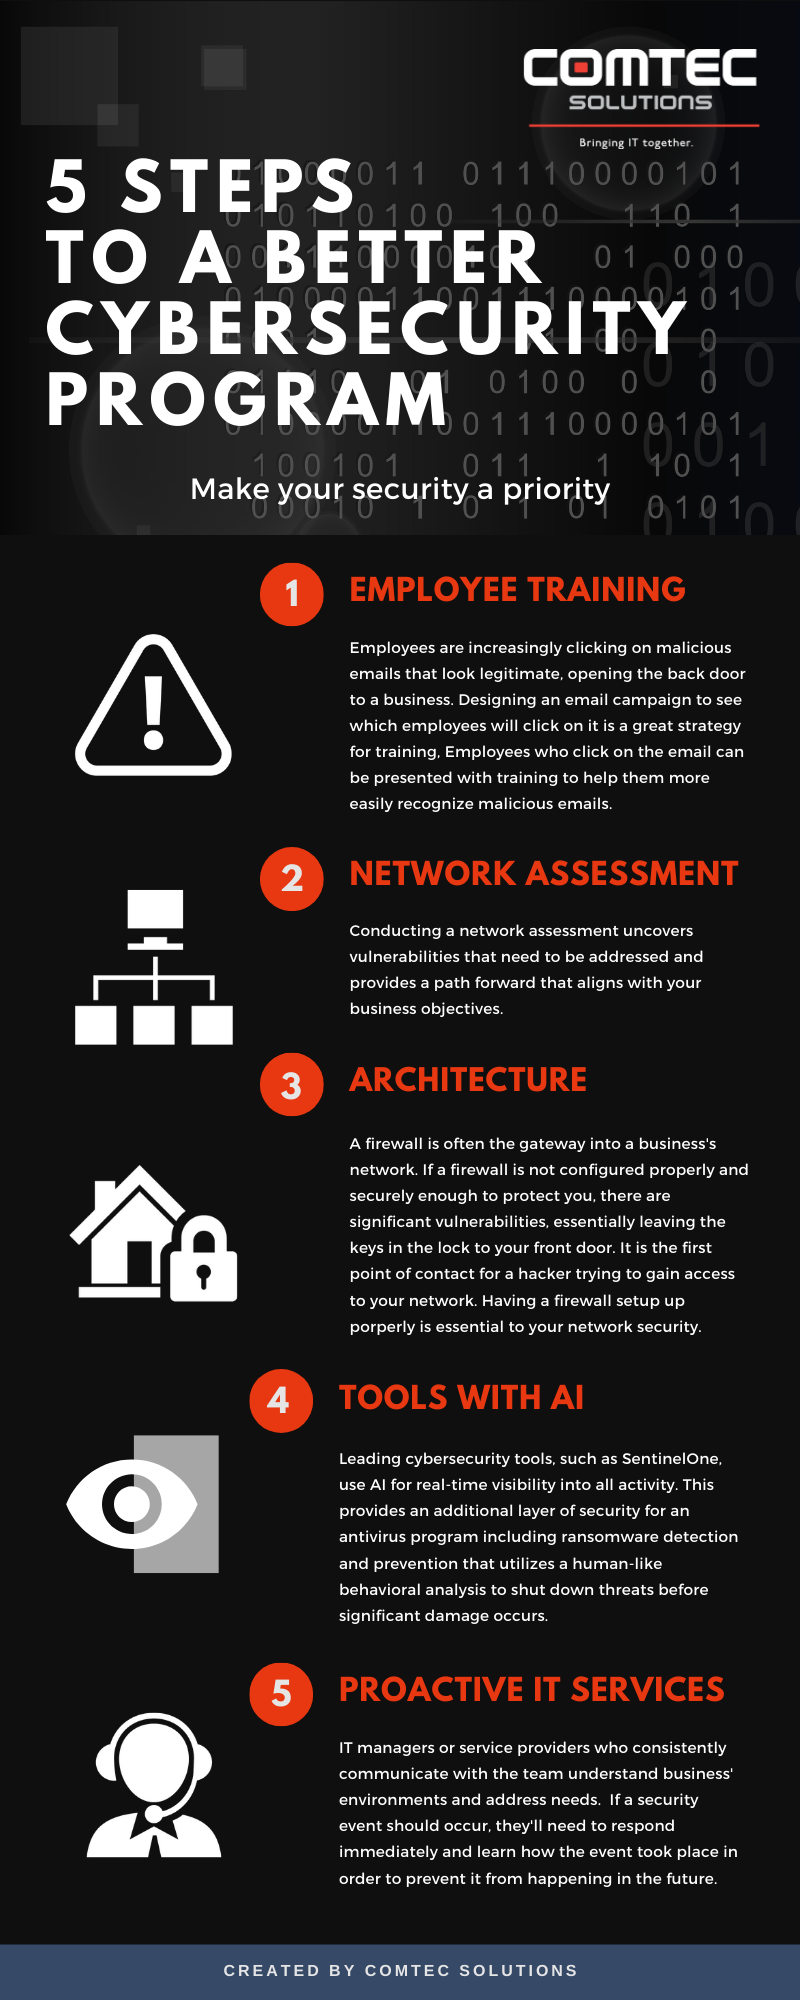 5 Steps to a Better Cybersecurity Program Infographic